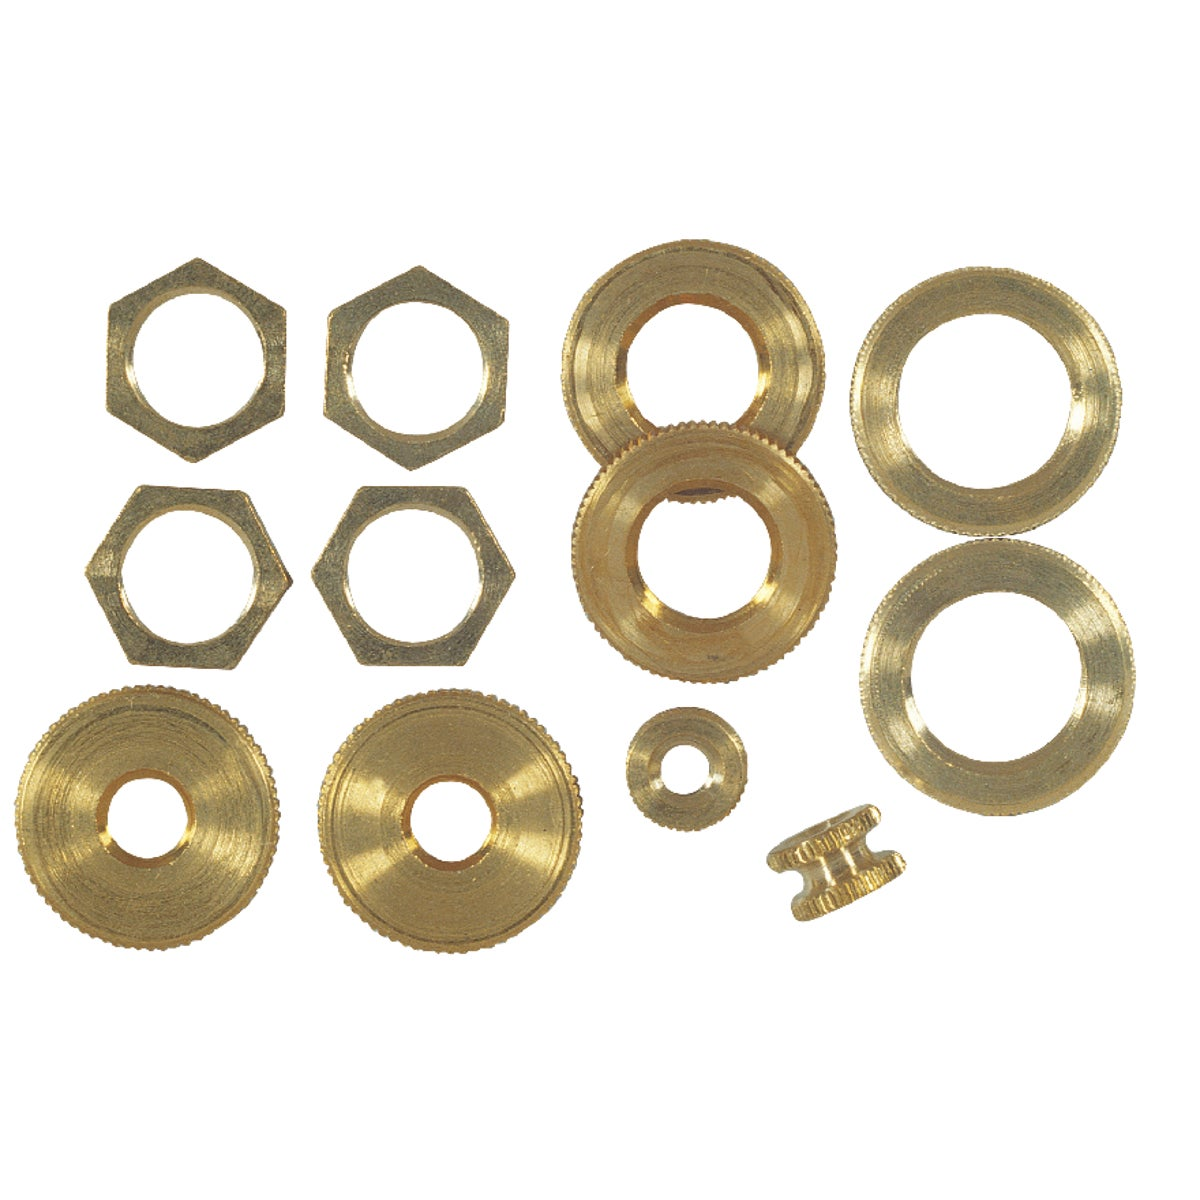 ASSORTED BRASS LOCKNUTS